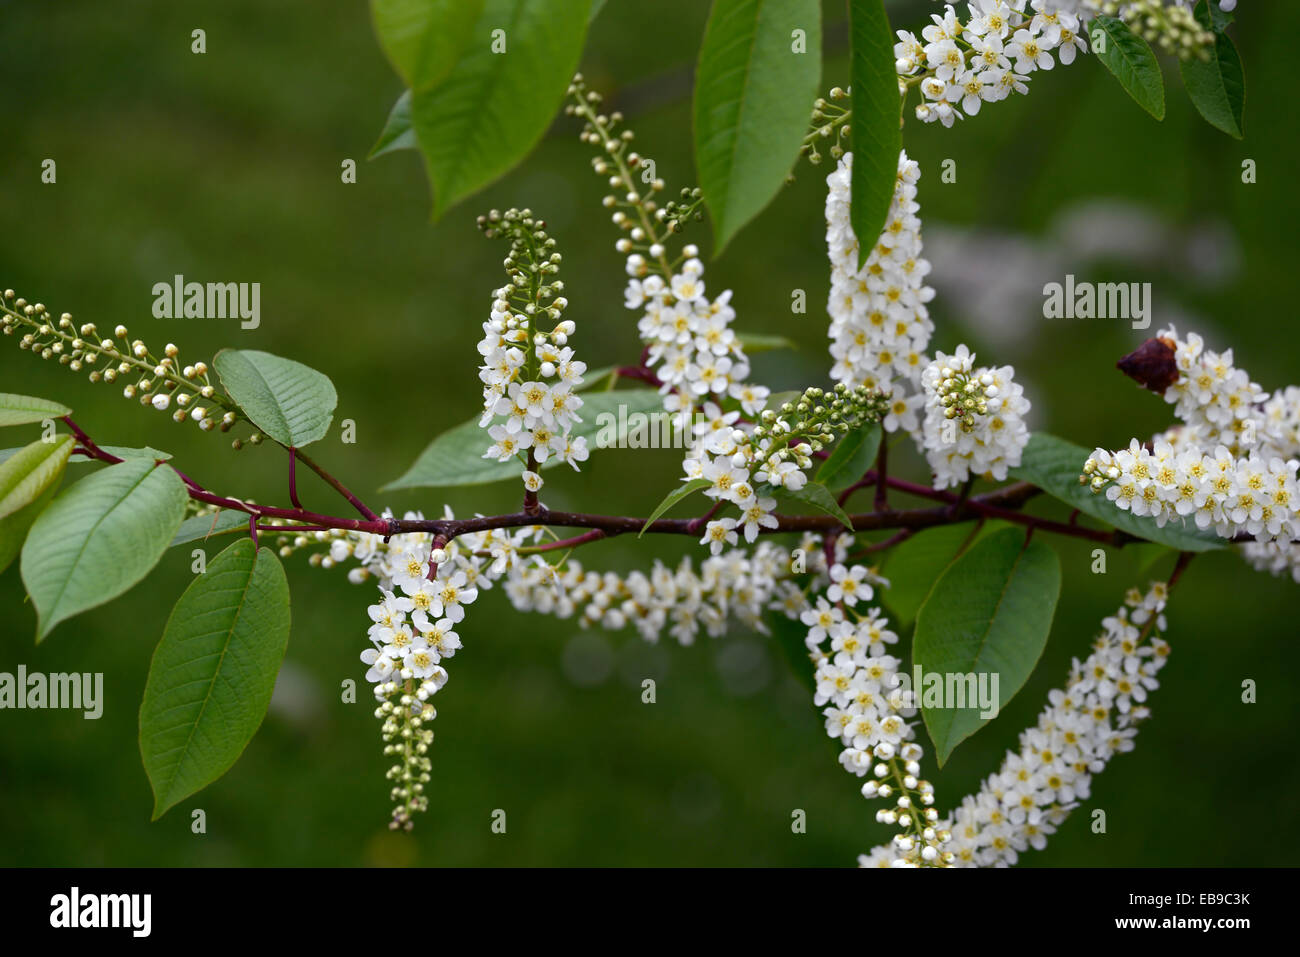 Racemes Of White Flowers Stock Photos Racemes Of White Flowers